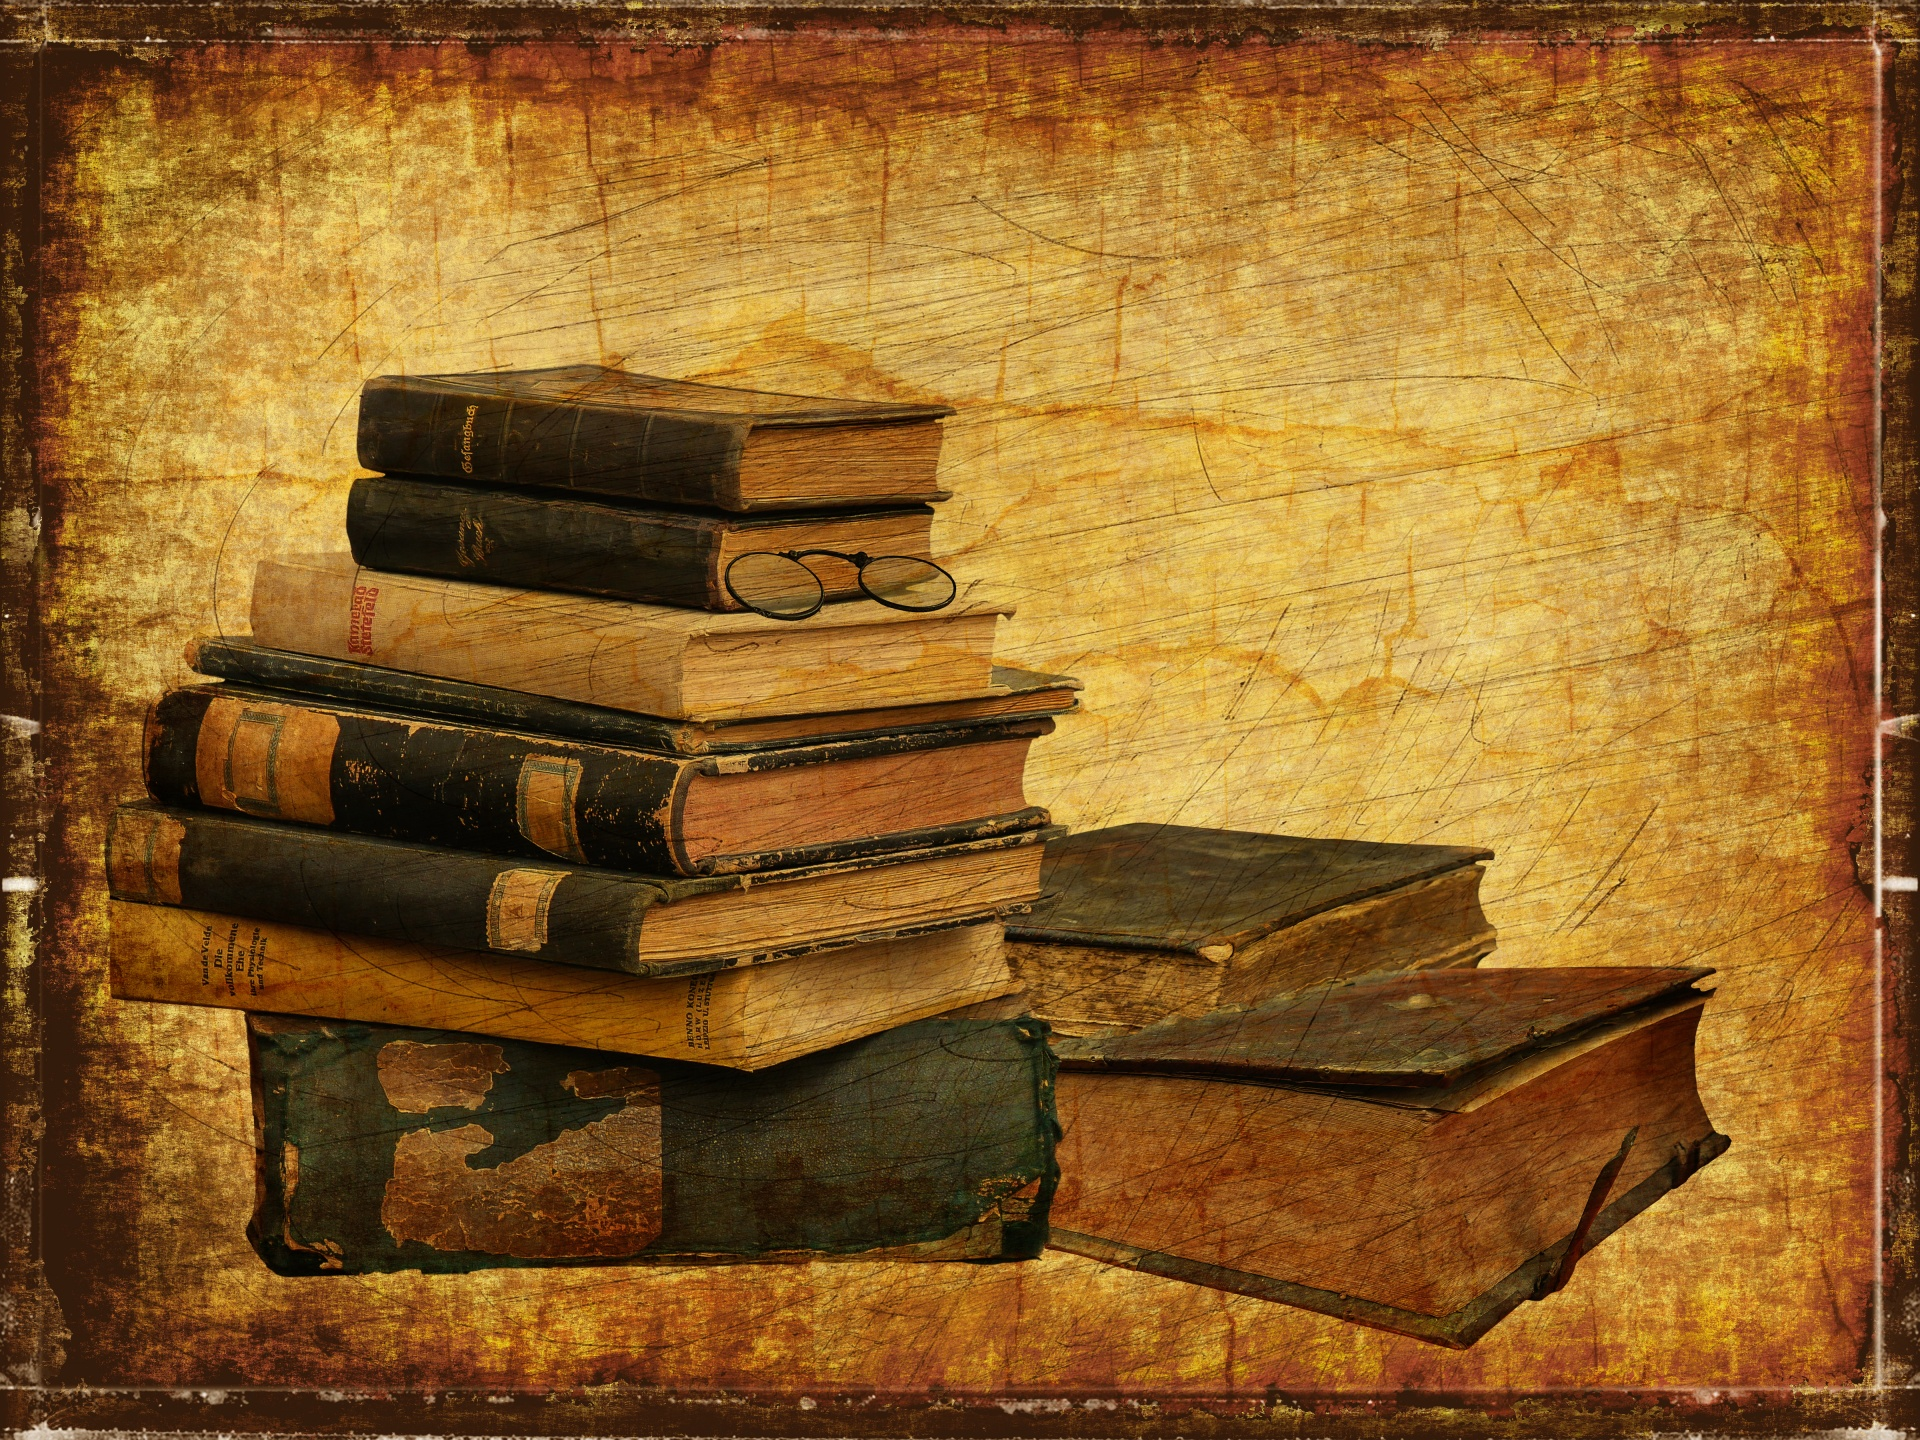 Old Books Vintage Background Free Stock Photo - Public Domain Pictures